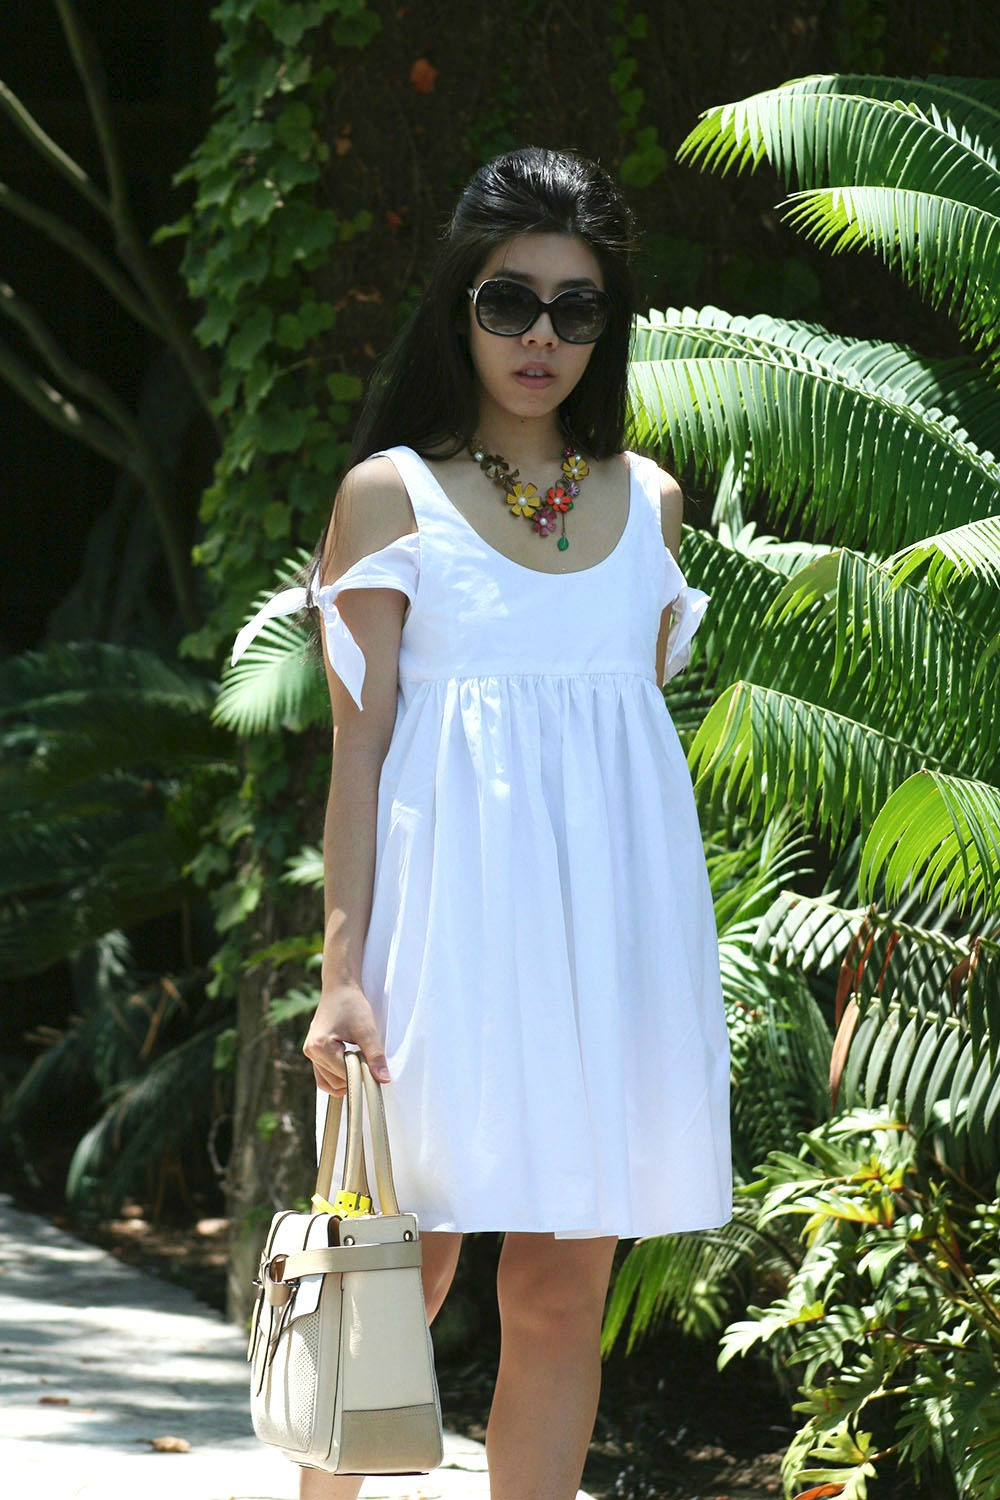 Adrienne Nguyen_Invictus_Petite Fashion Blogger_White Dress_Little White Dress_LWD